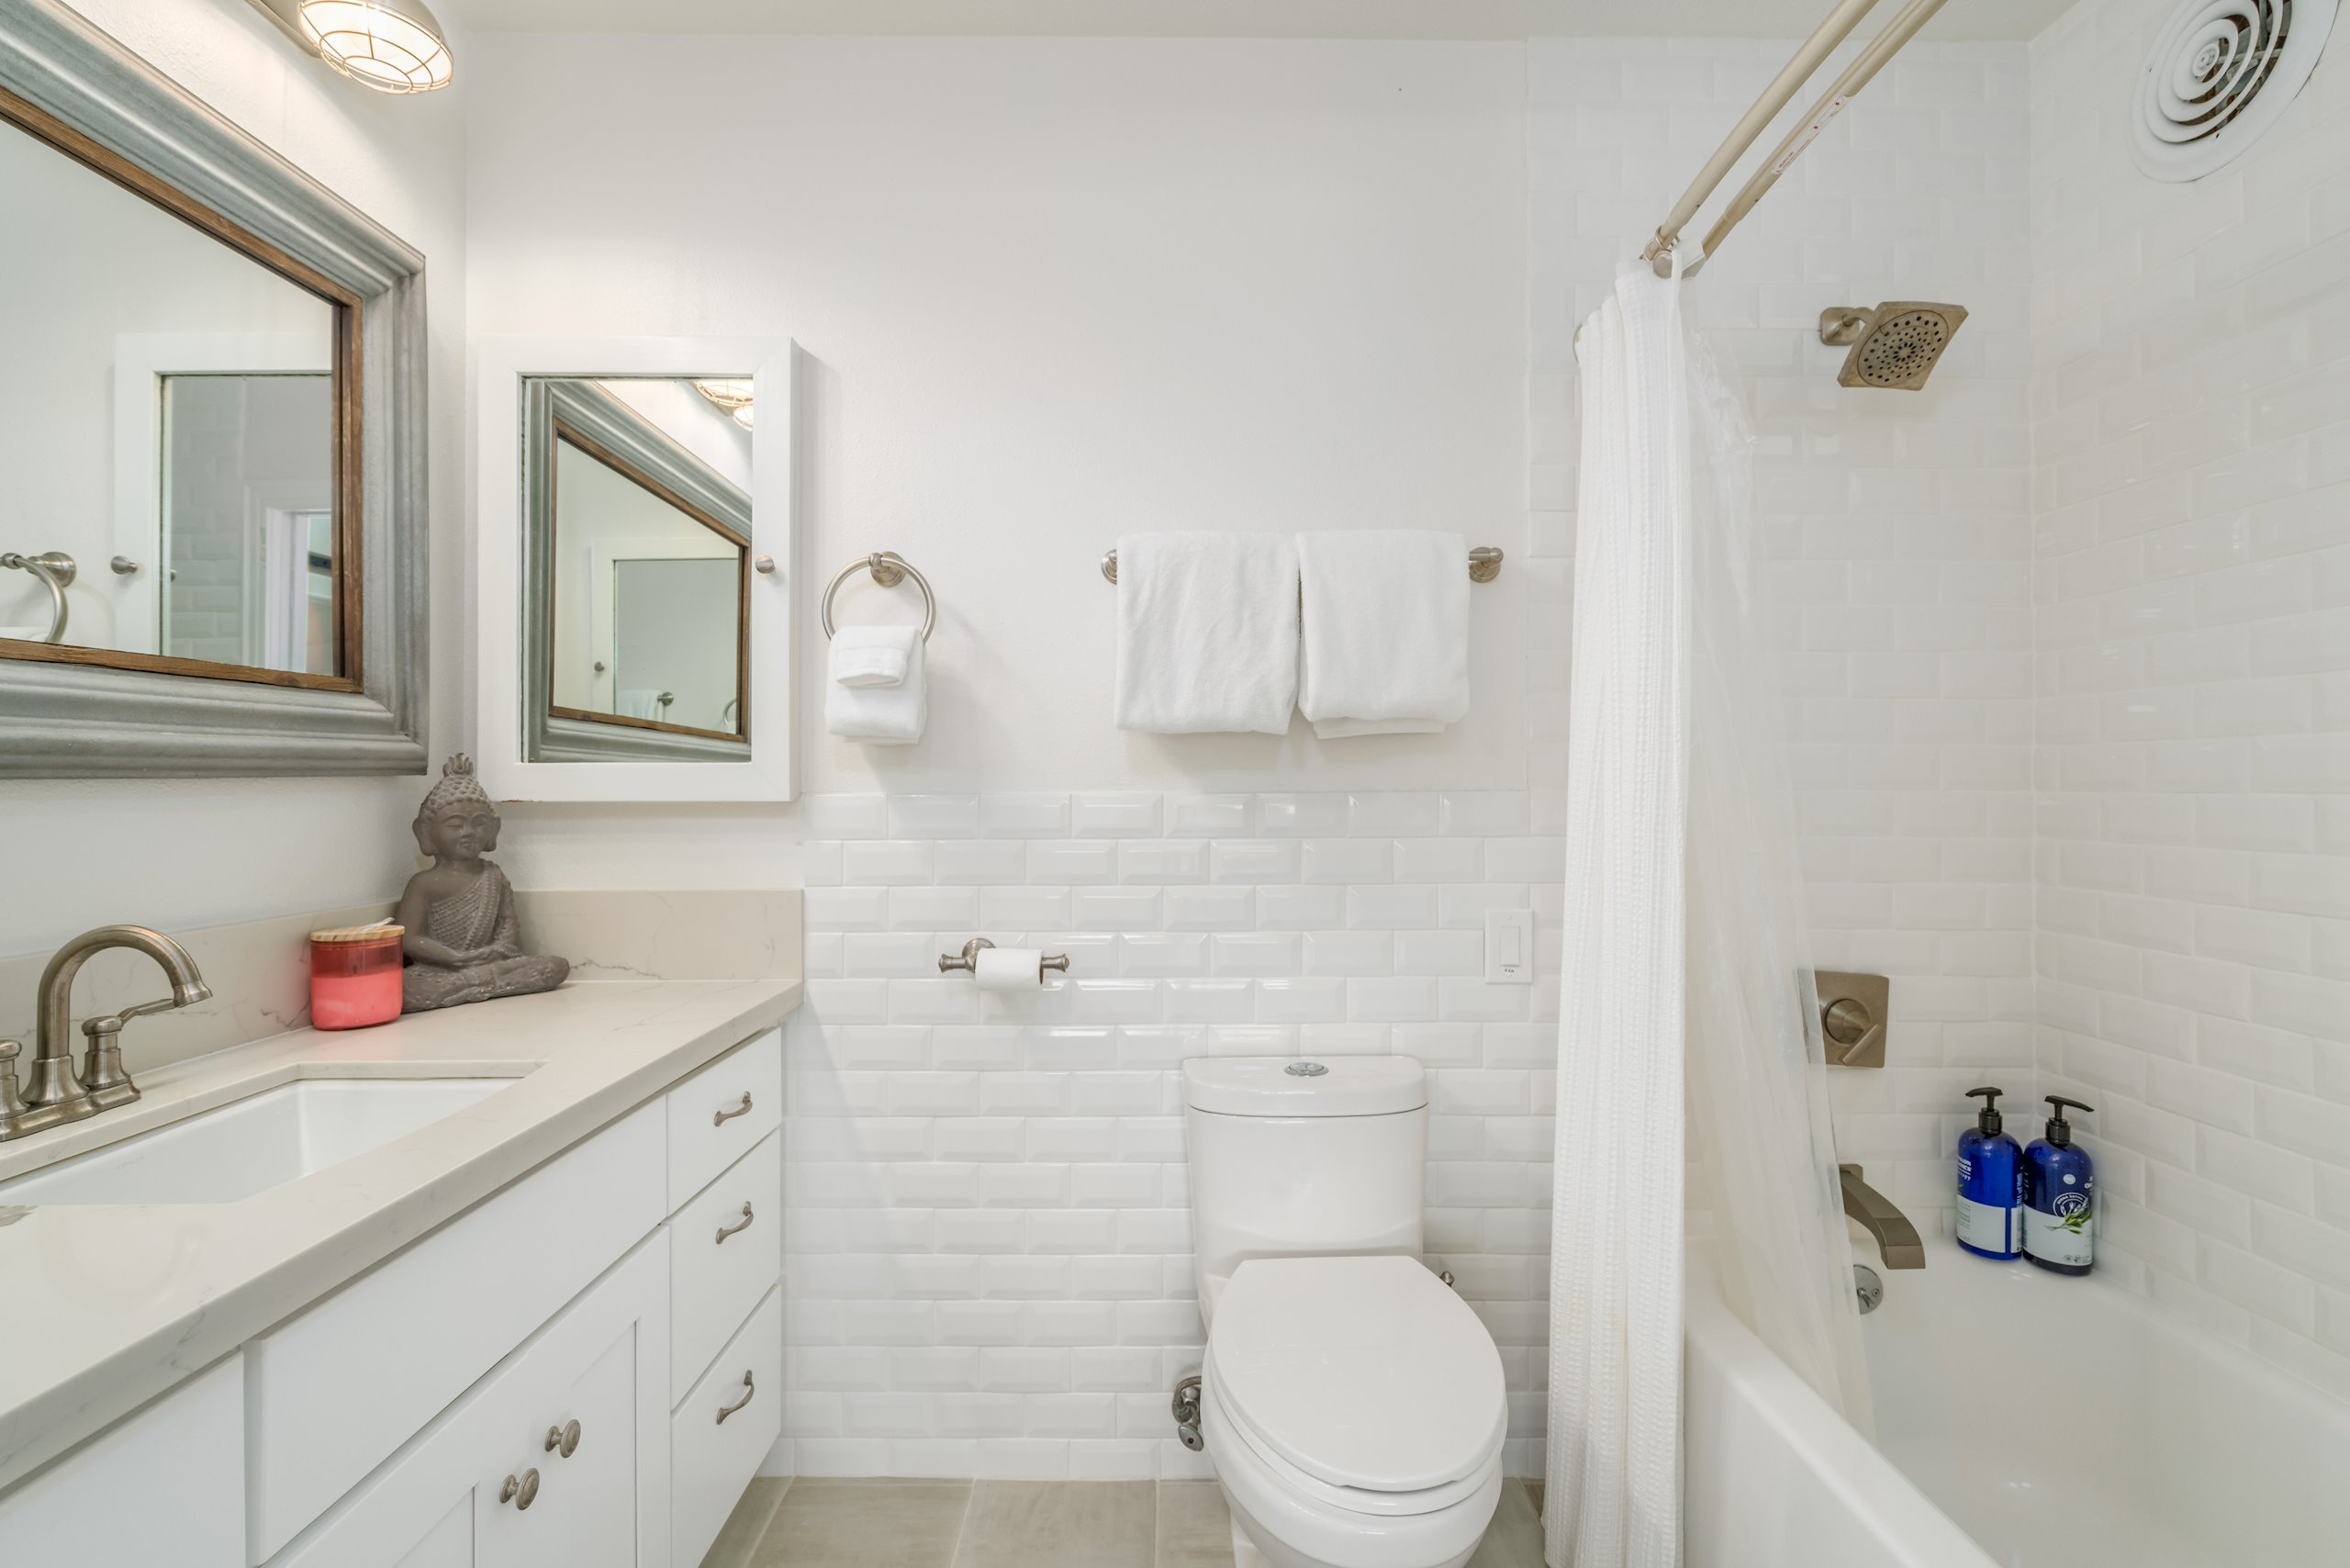 Custom tile work in all 3 bathrooms, off white Subway tile in master bath, pebble stoned showers.